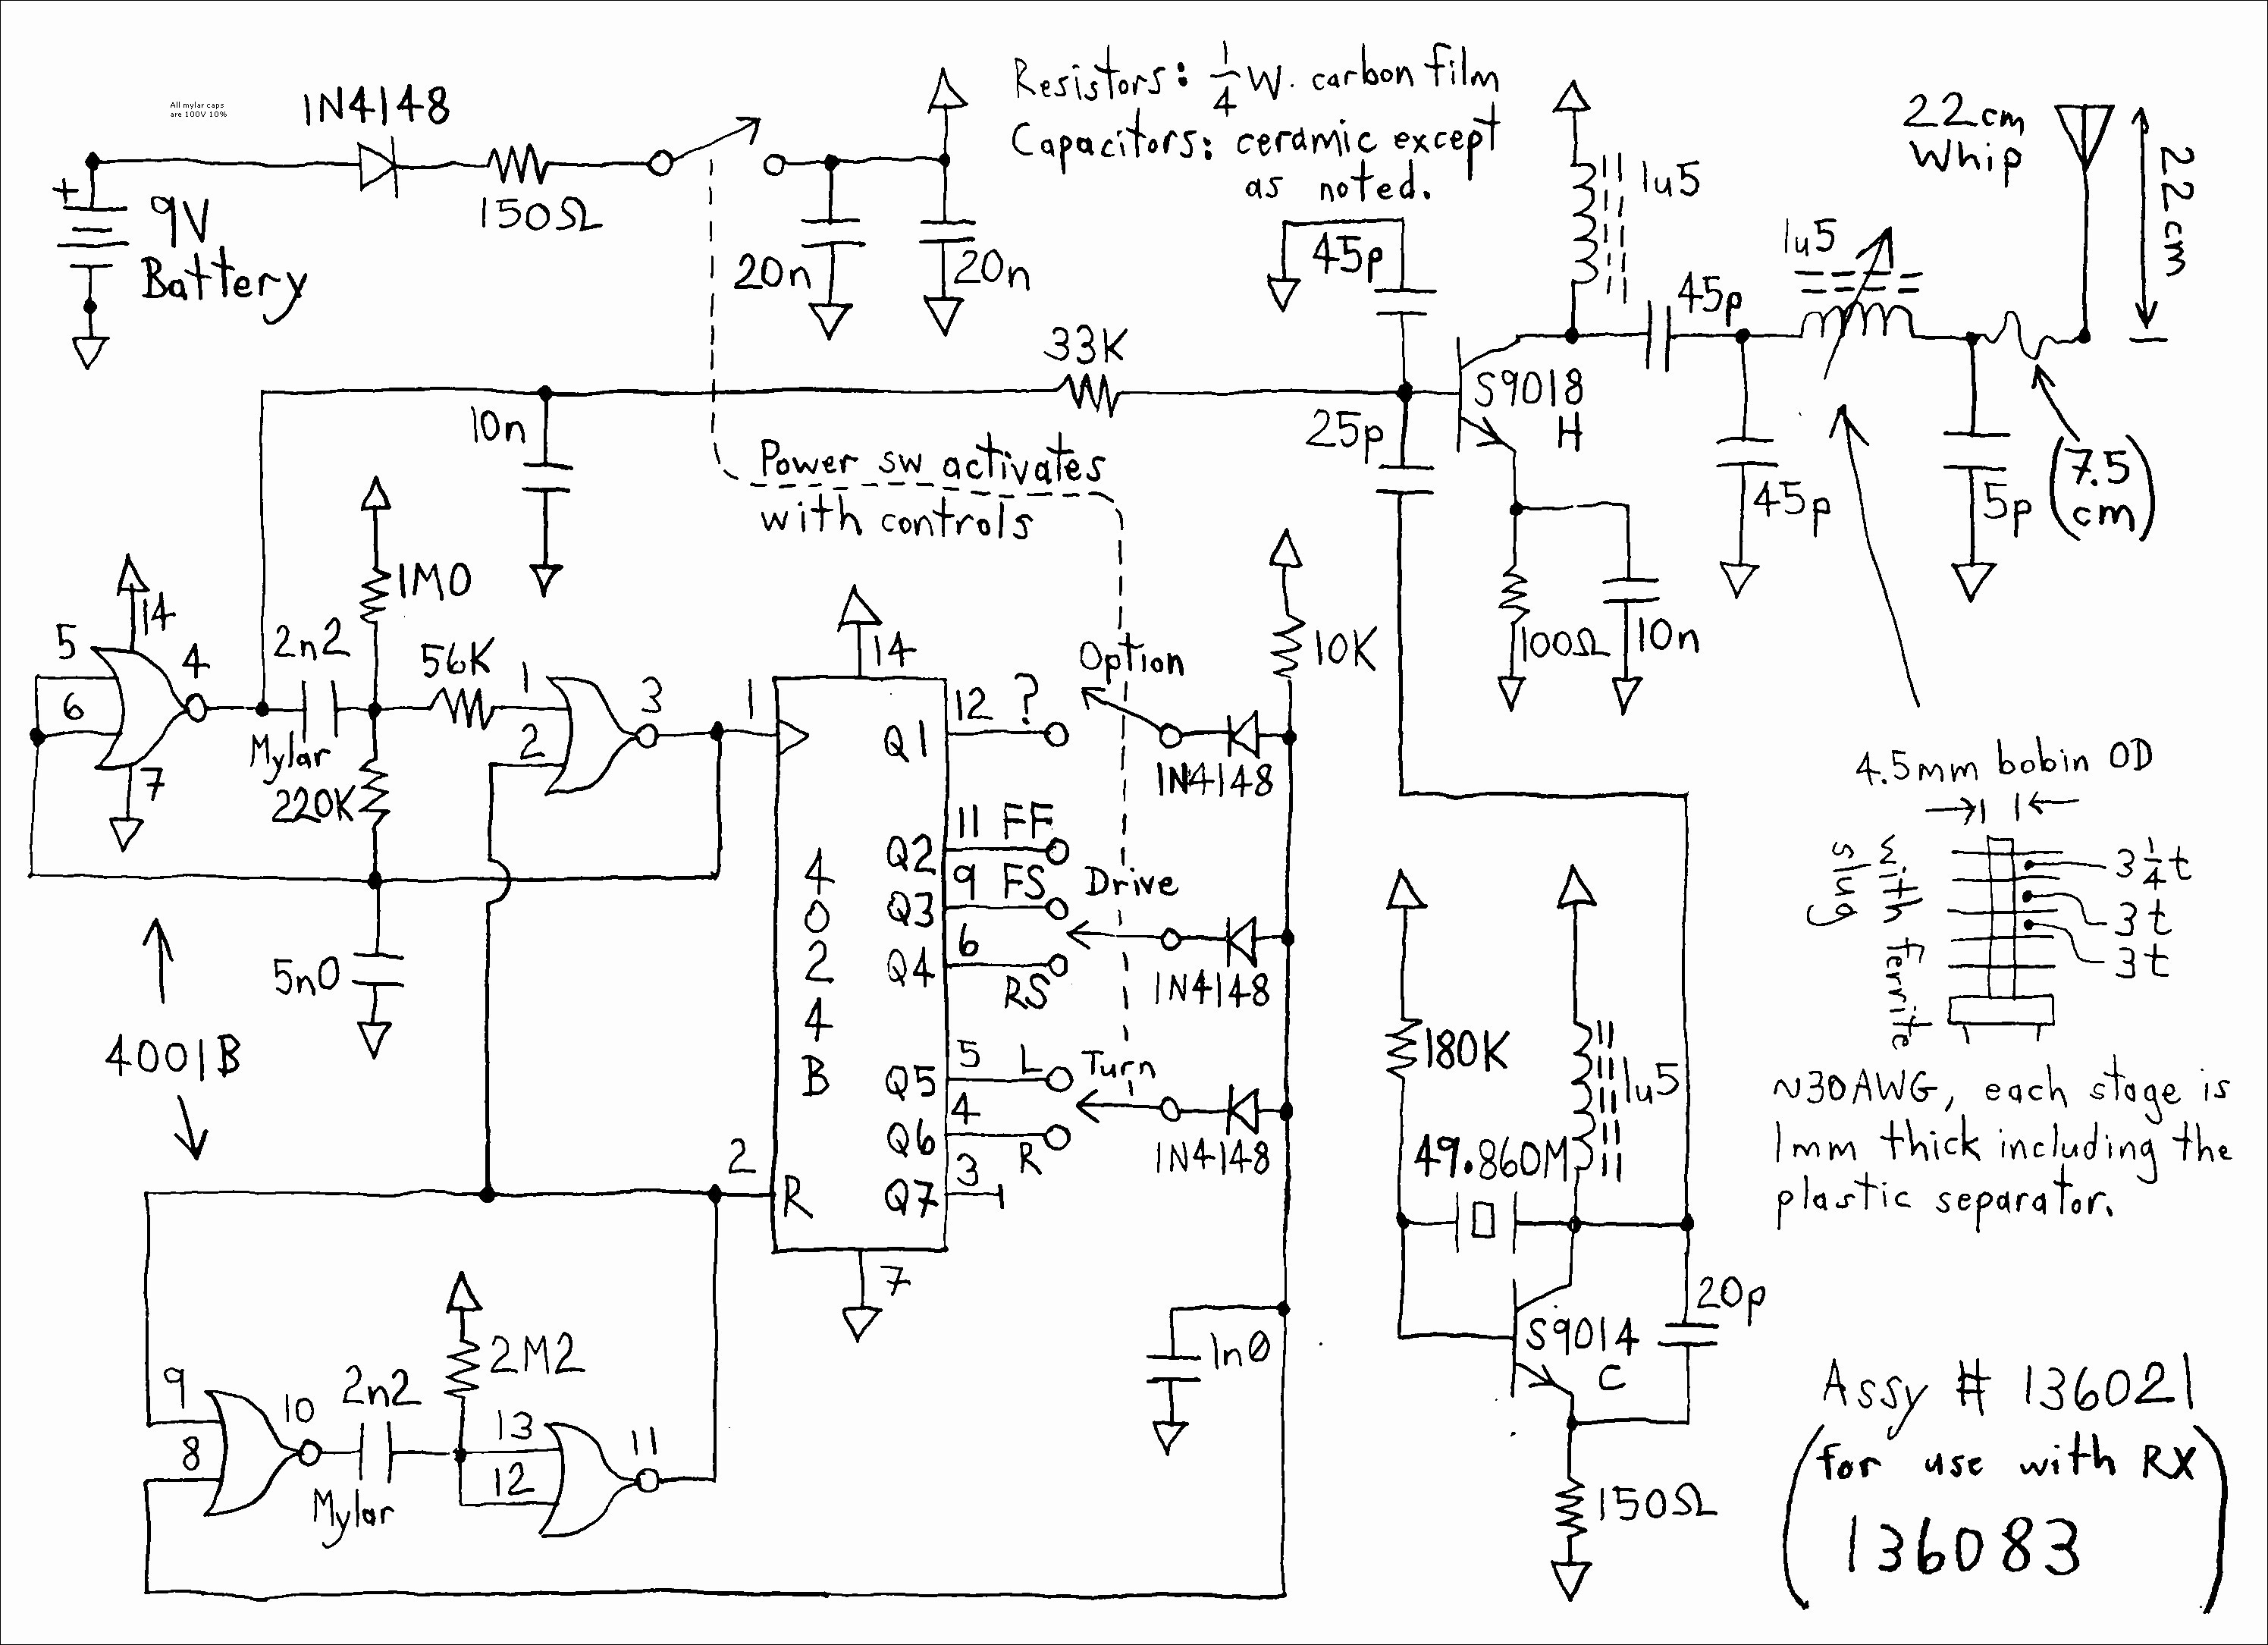 Harley Motor Diagram New Shovelhead Wiring Diagram – Brittartdesign Of Harley Motor Diagram